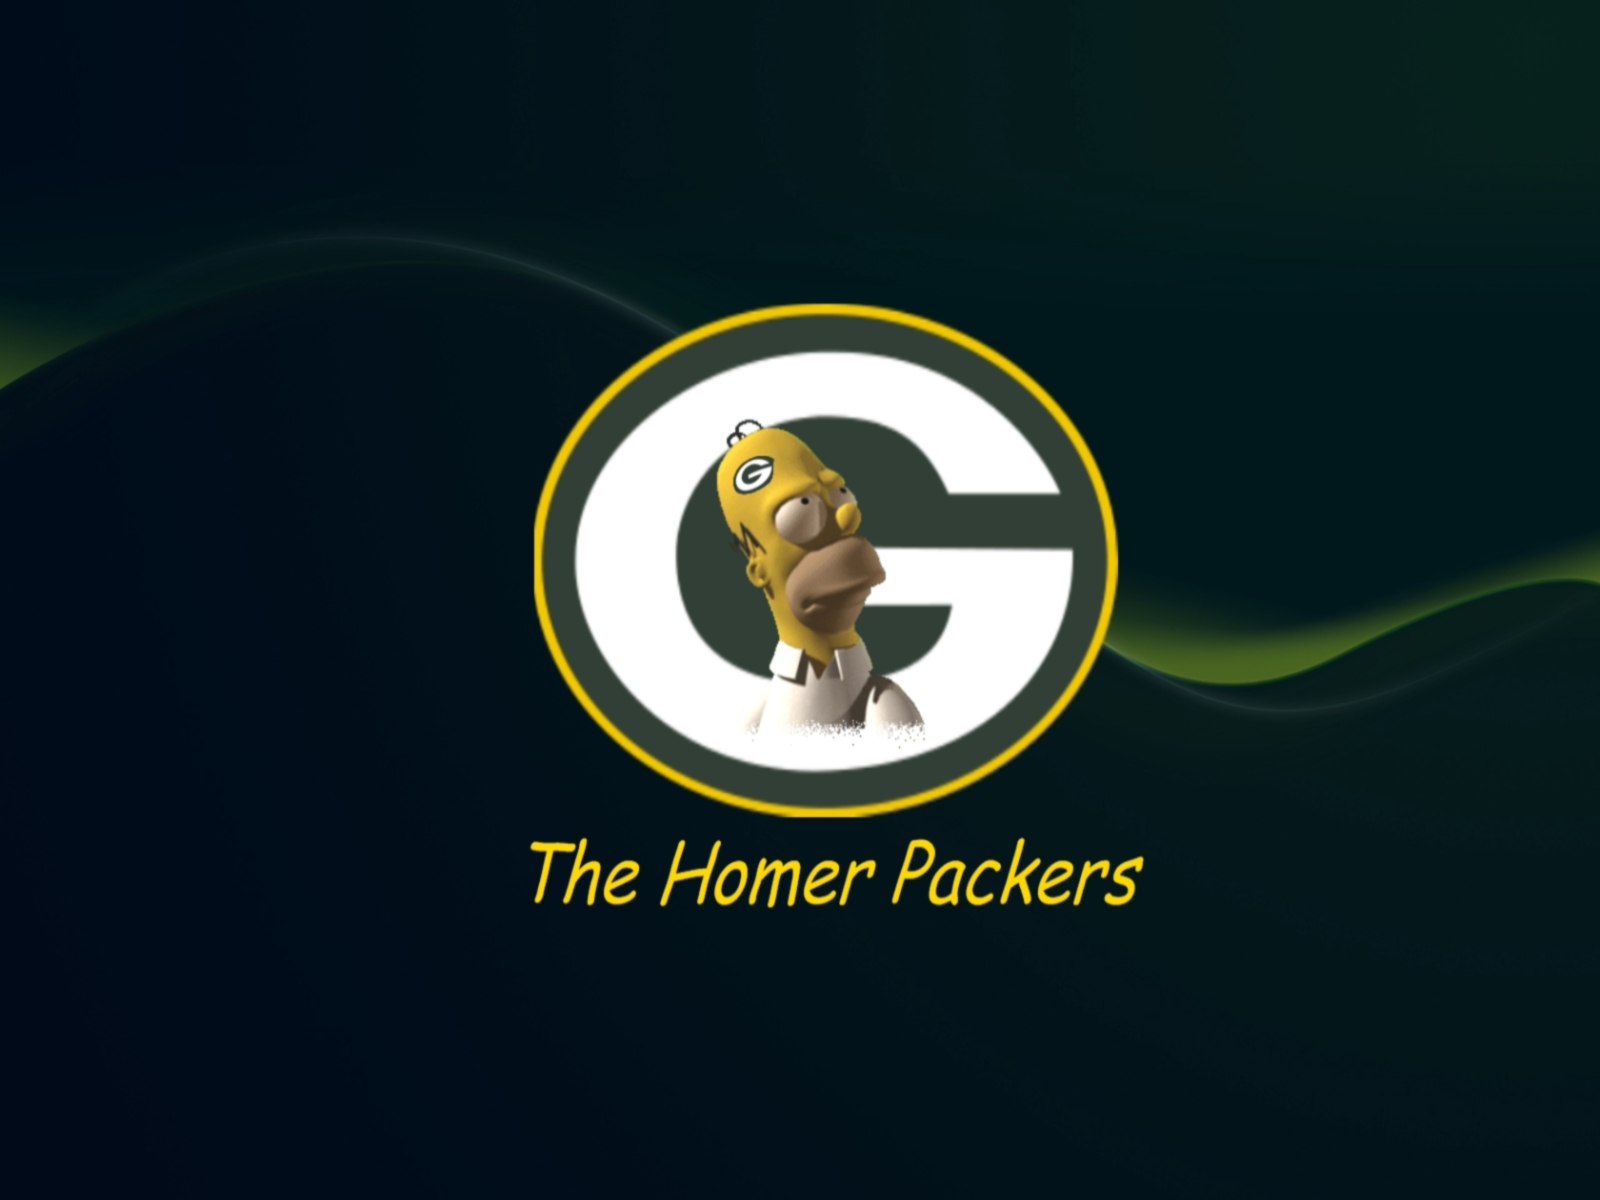 https://2.bp.blogspot.com/_SPY5-z18DBU/TUTpluVZgvI/AAAAAAAAAx0/UMDyGu5TSsQ/s1600/packers_logo_wallpaper_simpson_2.jpg